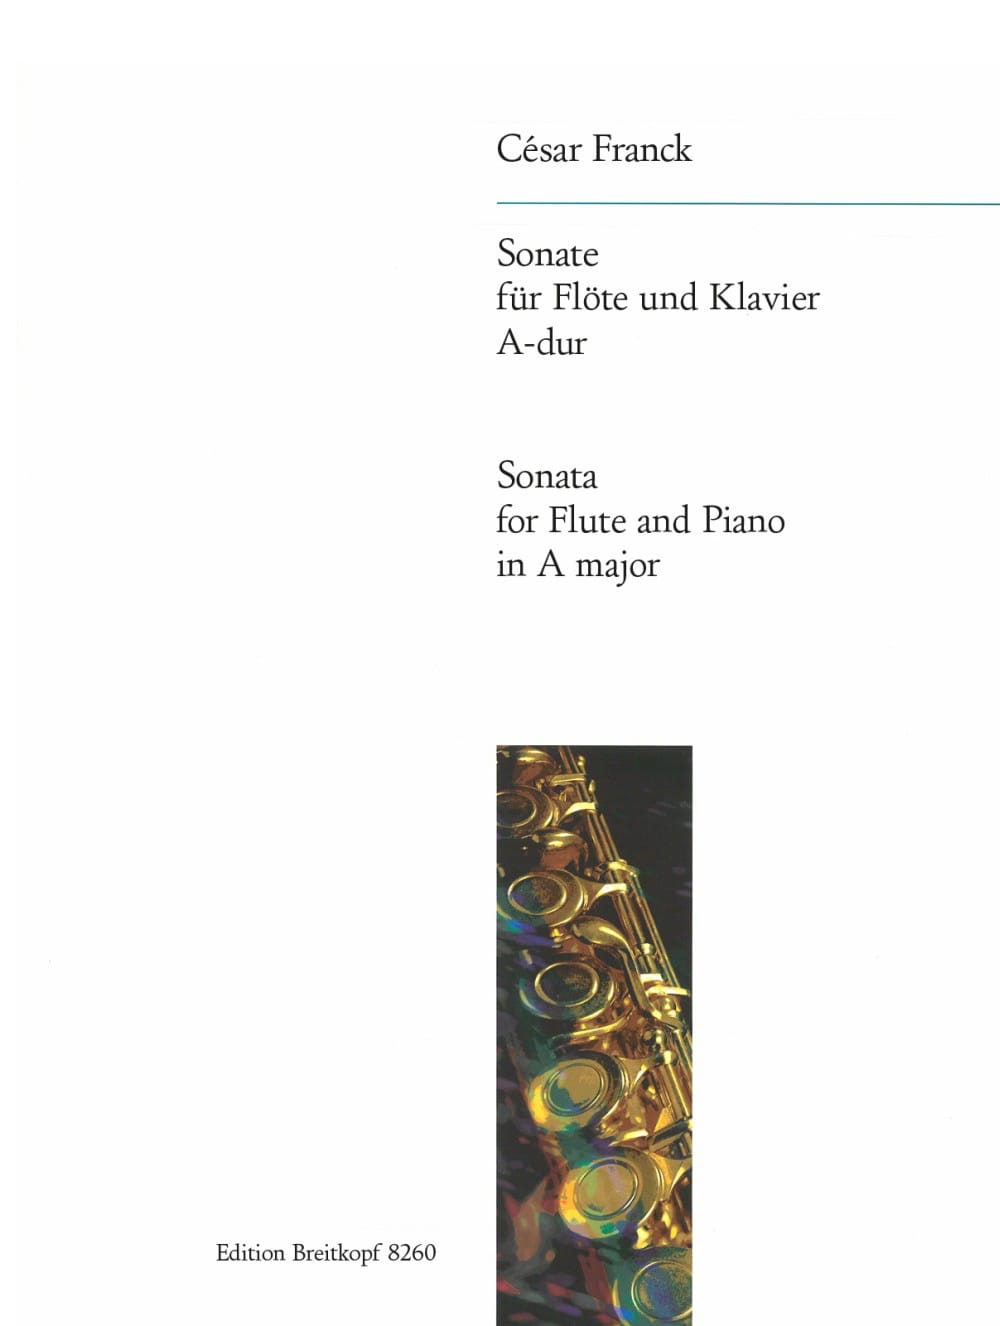 César Franck - A-Dur Sonata - piano flute - Partition - di-arezzo.co.uk